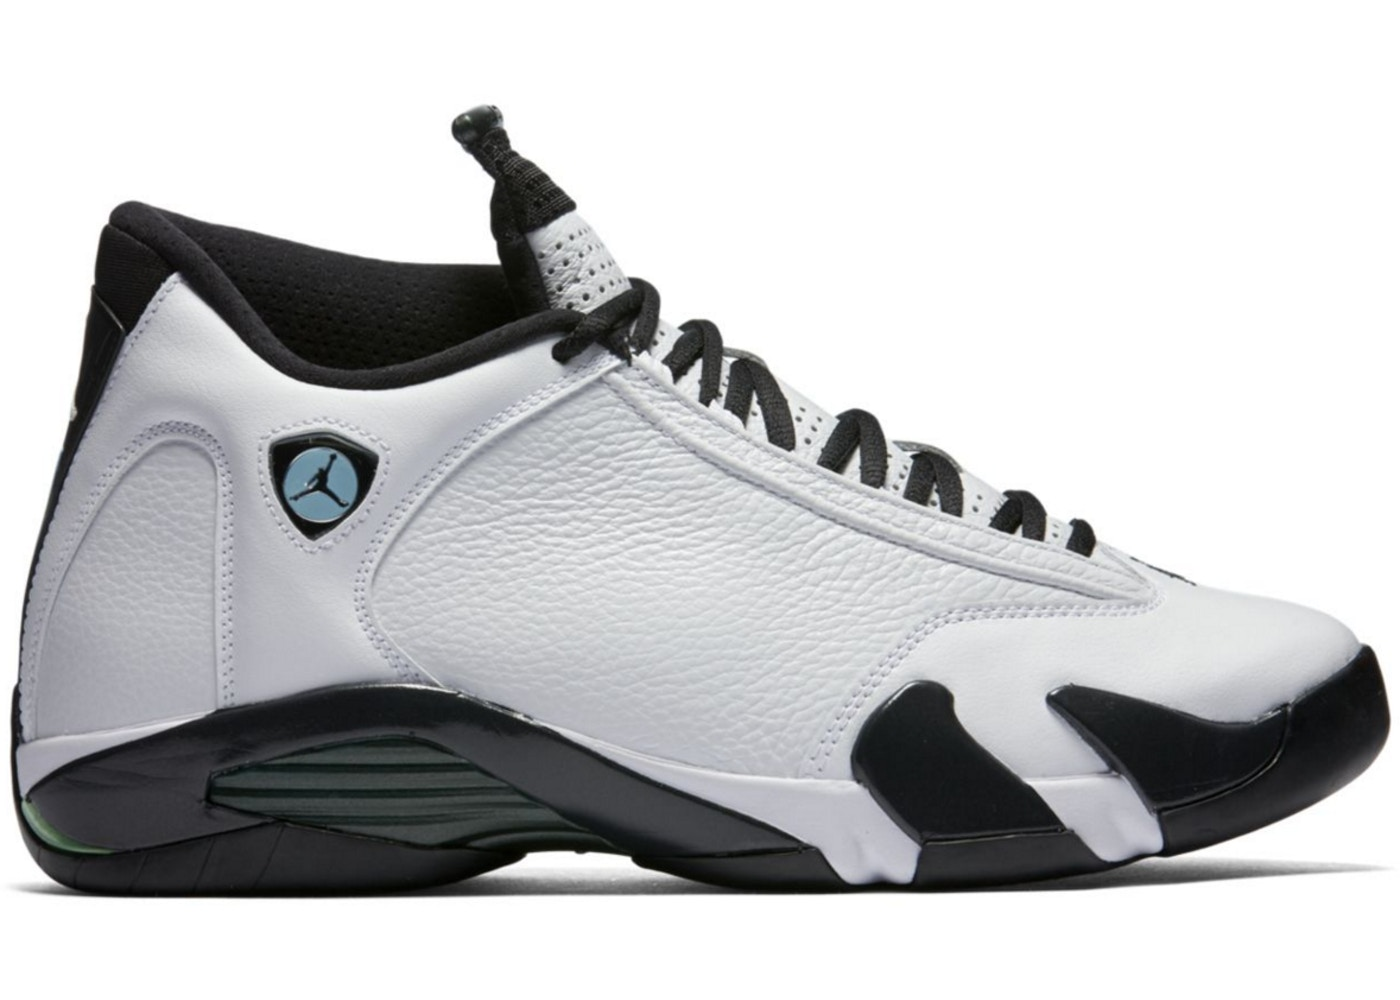 c7e7cc06eb3 Jordan 14 Retro Oxidized Green (2016) - 487471-106